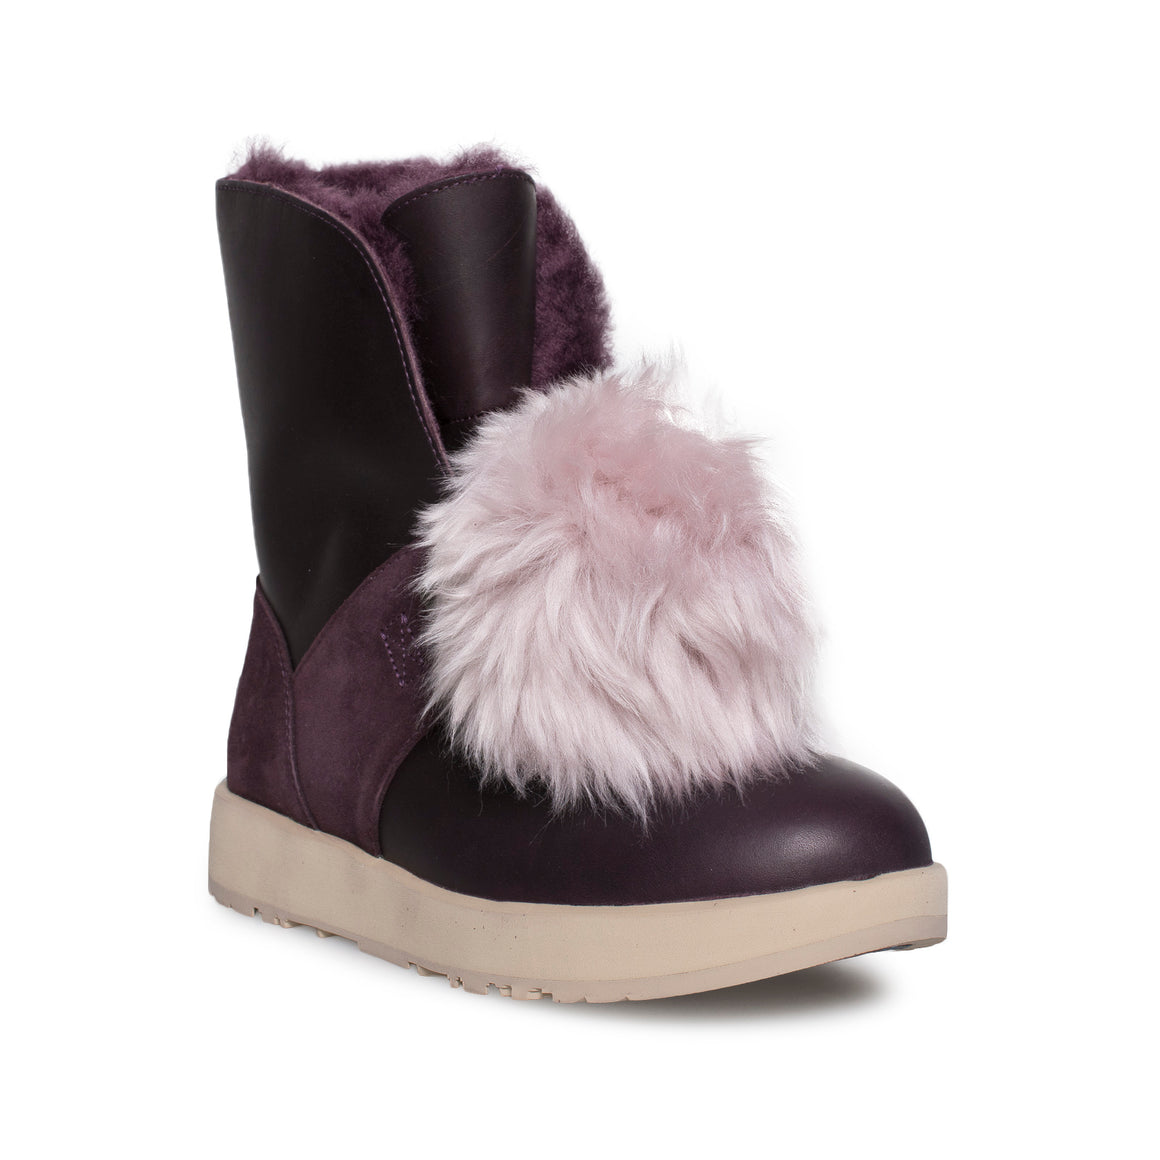 UGG Isley Waterproof Port Boots